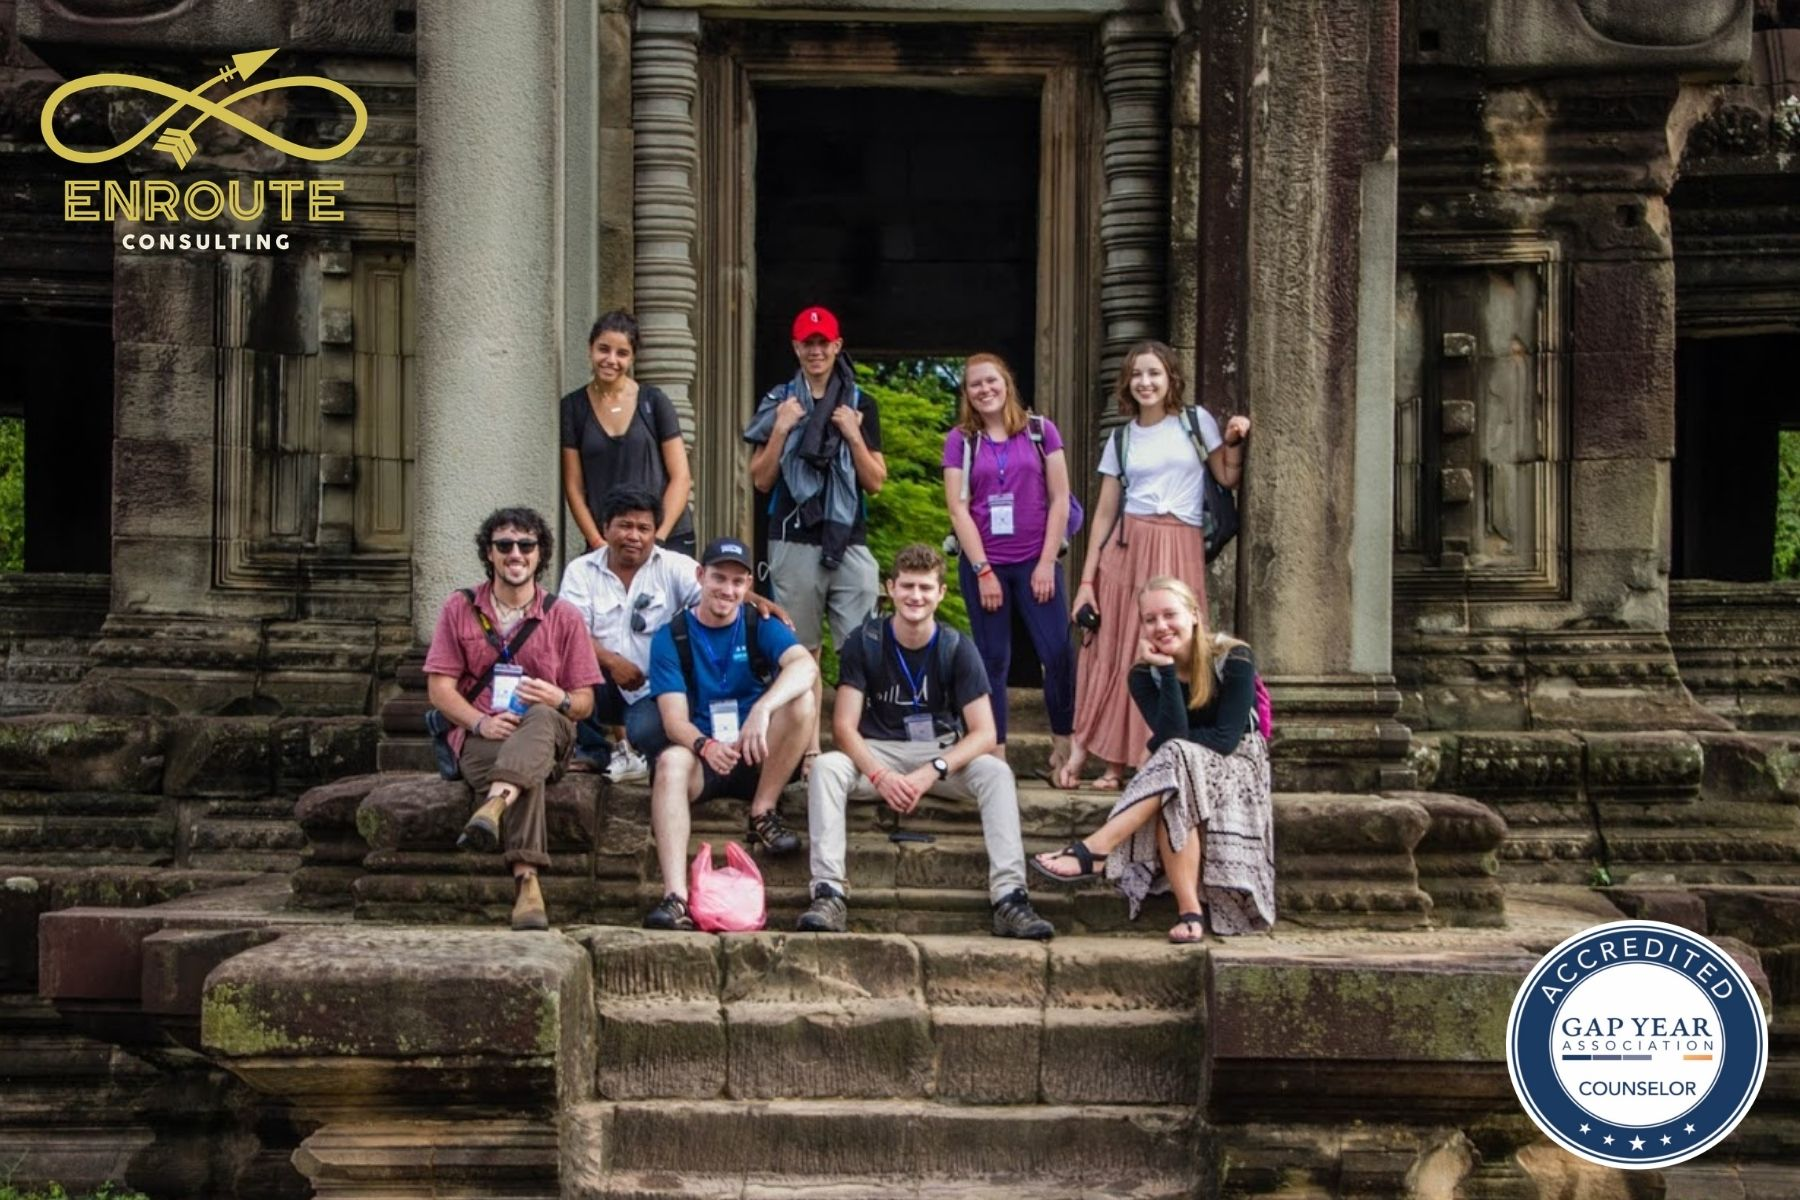 Business - Gap Year Program Advisors | EnRoute Consulting - Personalized Gap Year Coach & Counselor